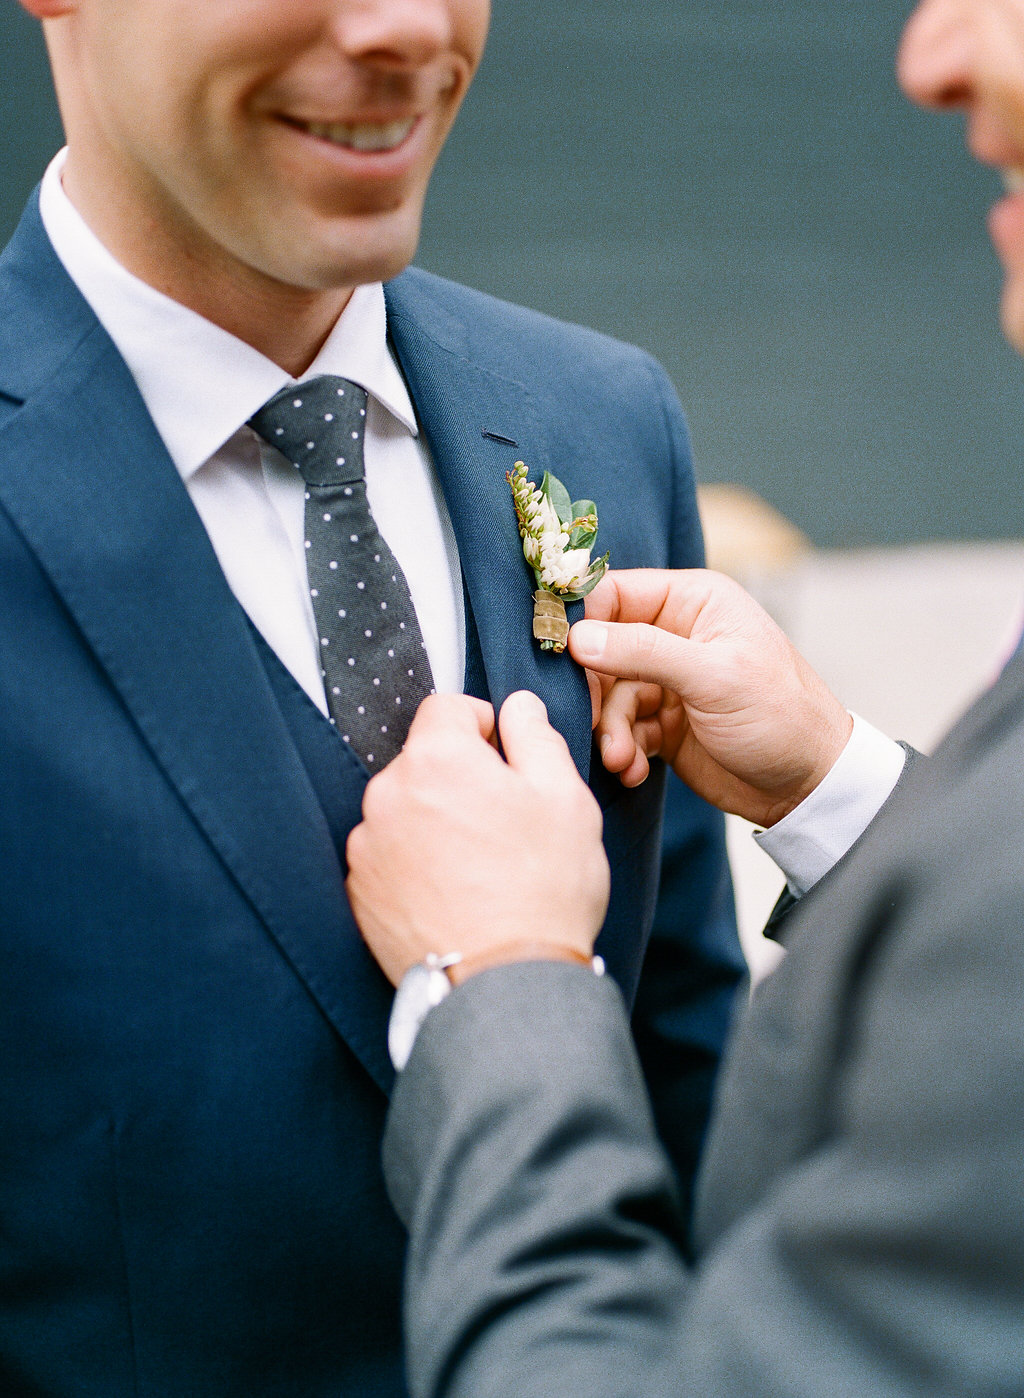 groom pinning boutonniere on his groom